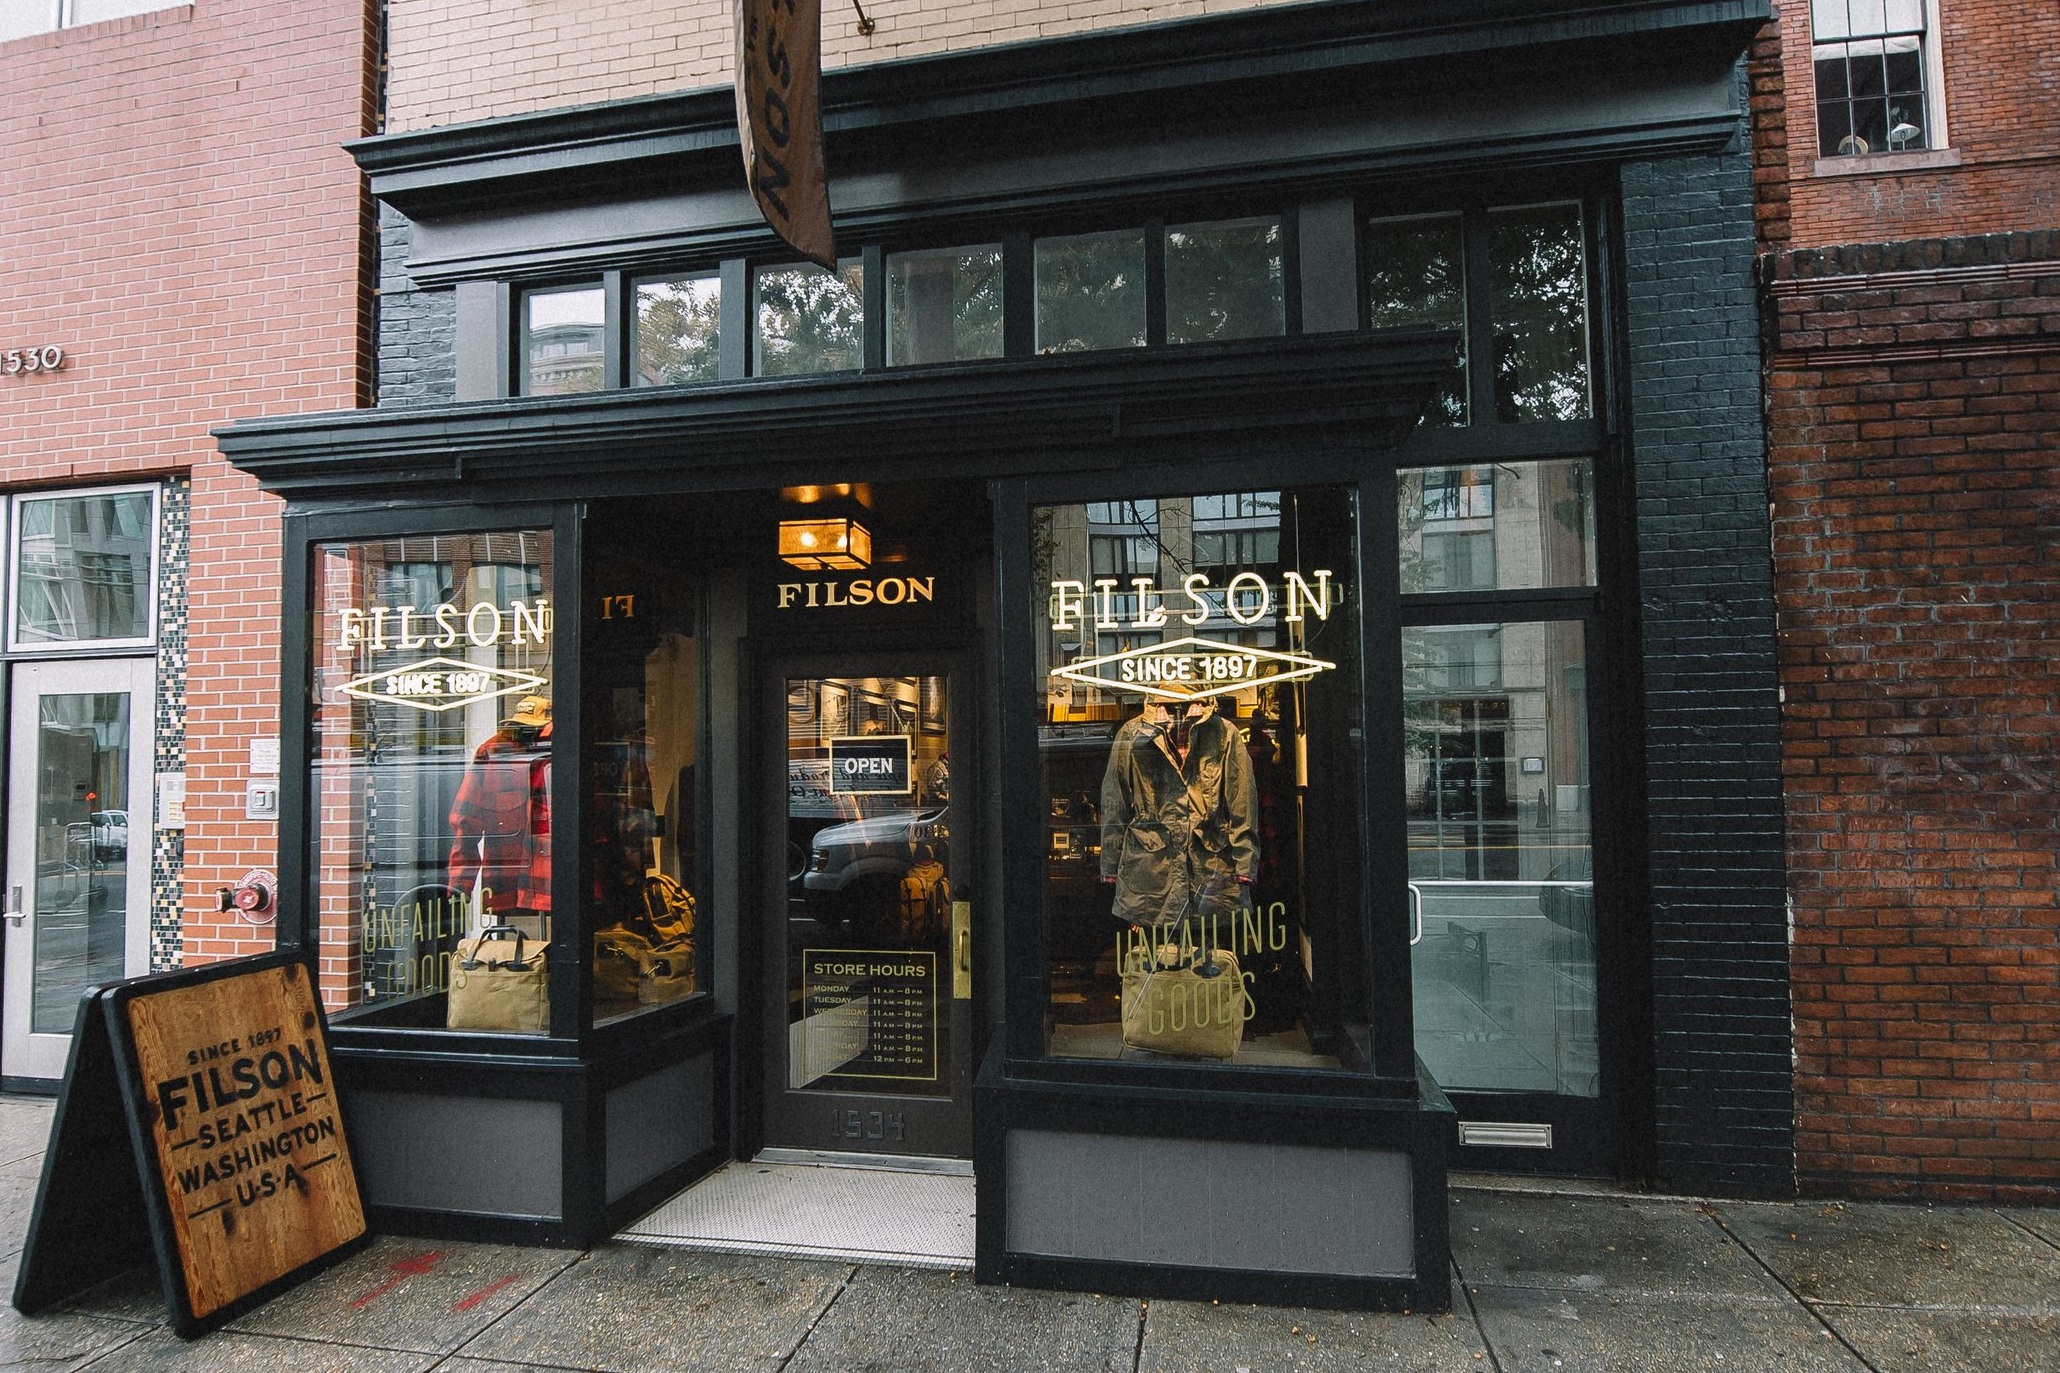 Filson: Washington, D.C.